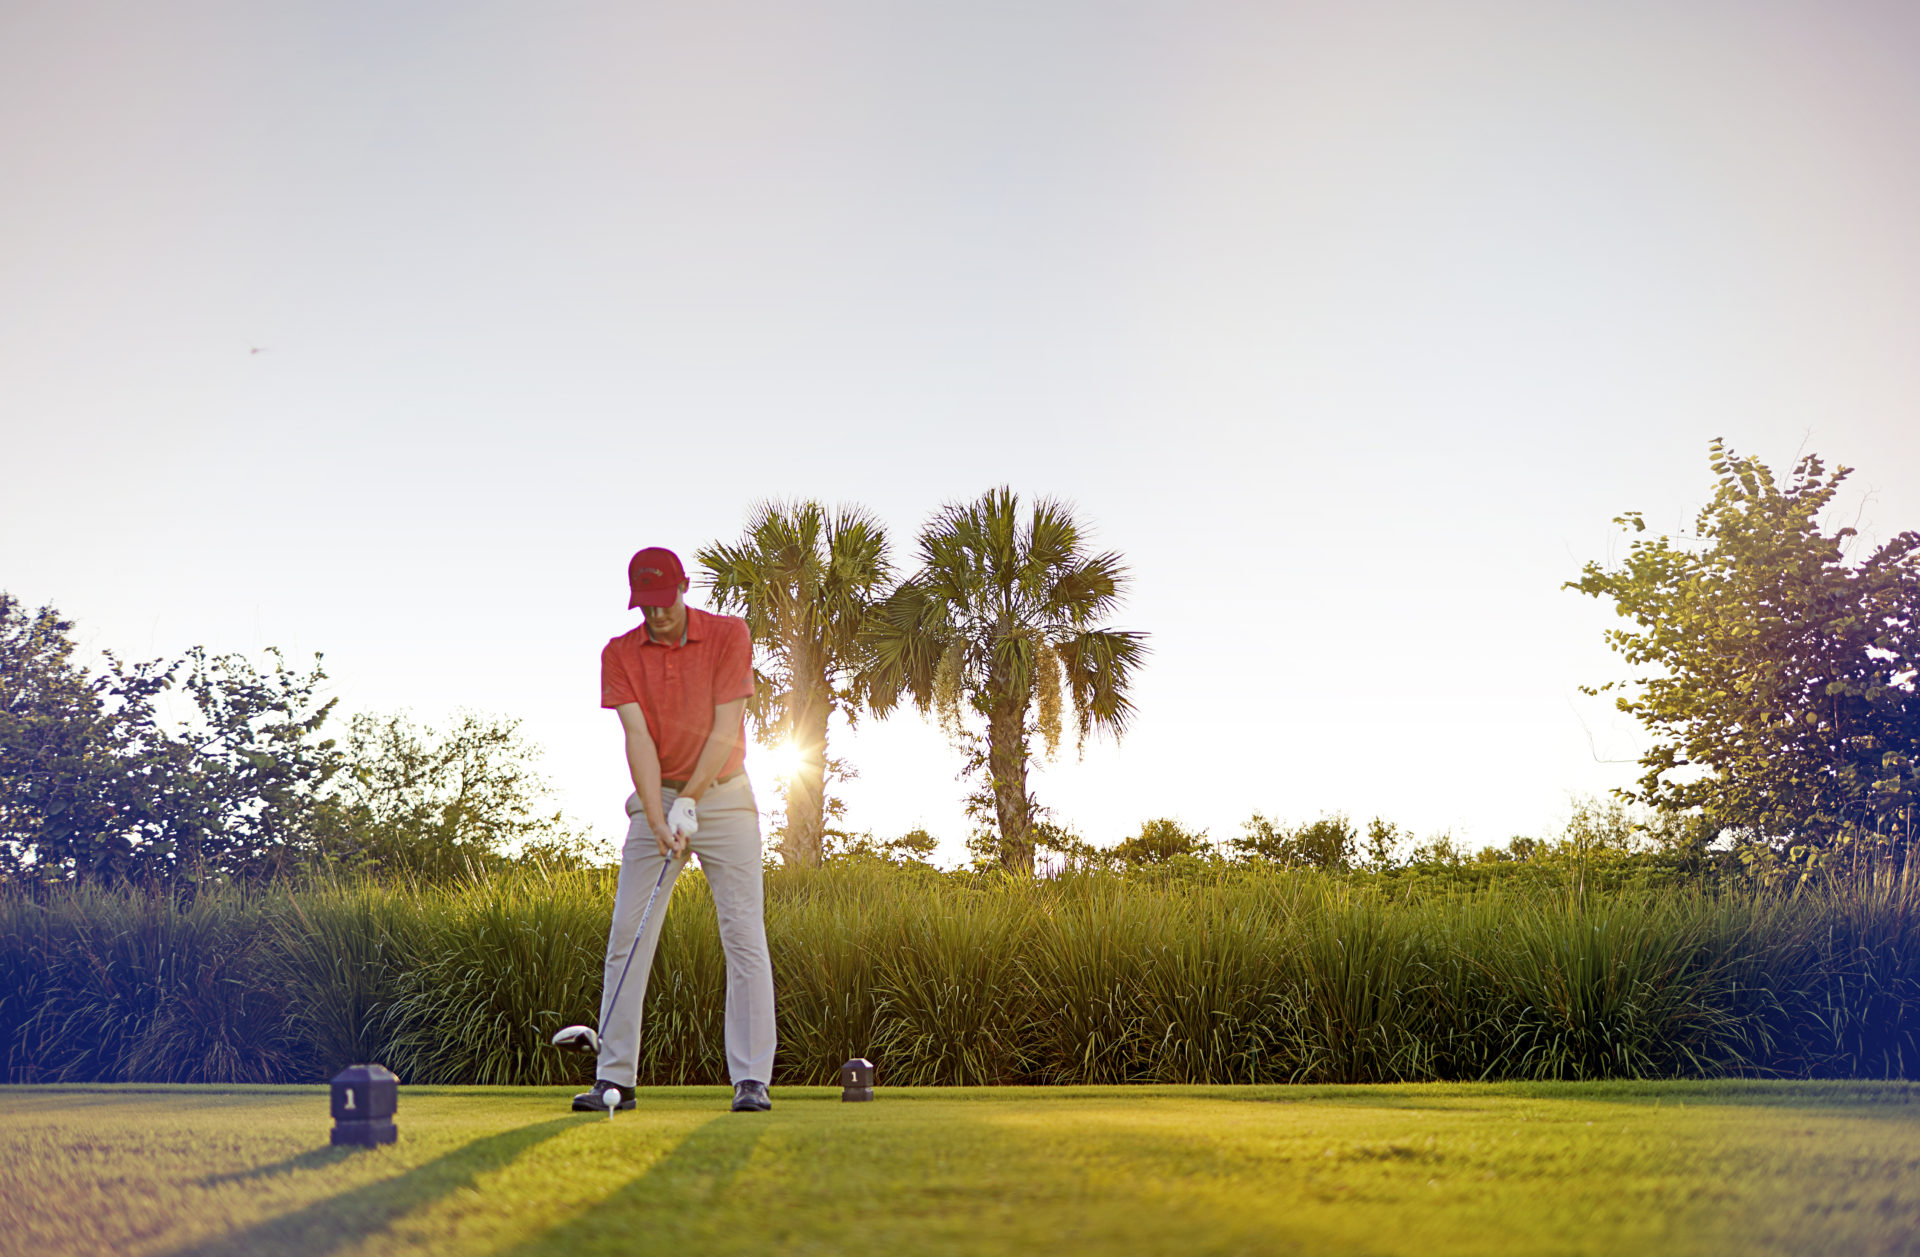 Golfer about to swing during sunset